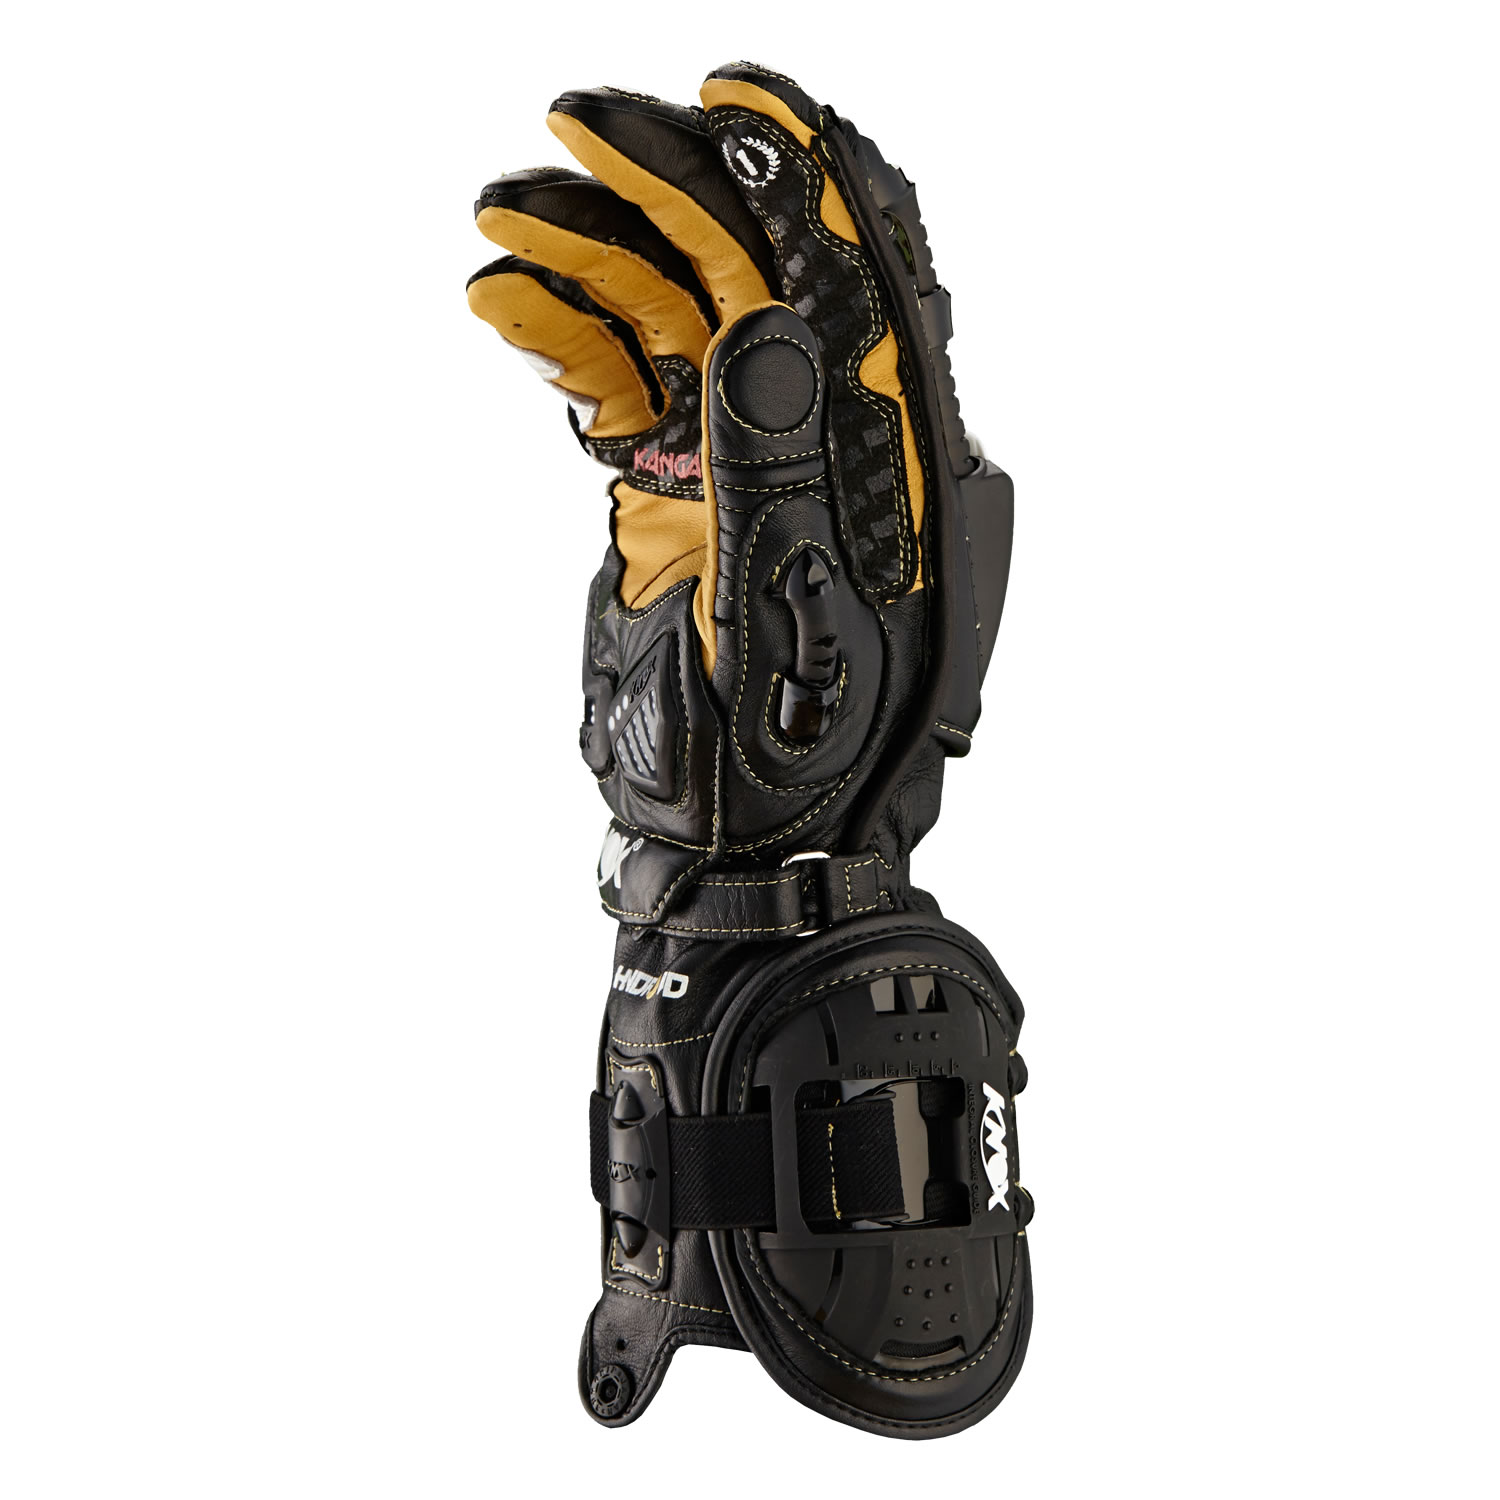 Motorcycle gloves ce approved -